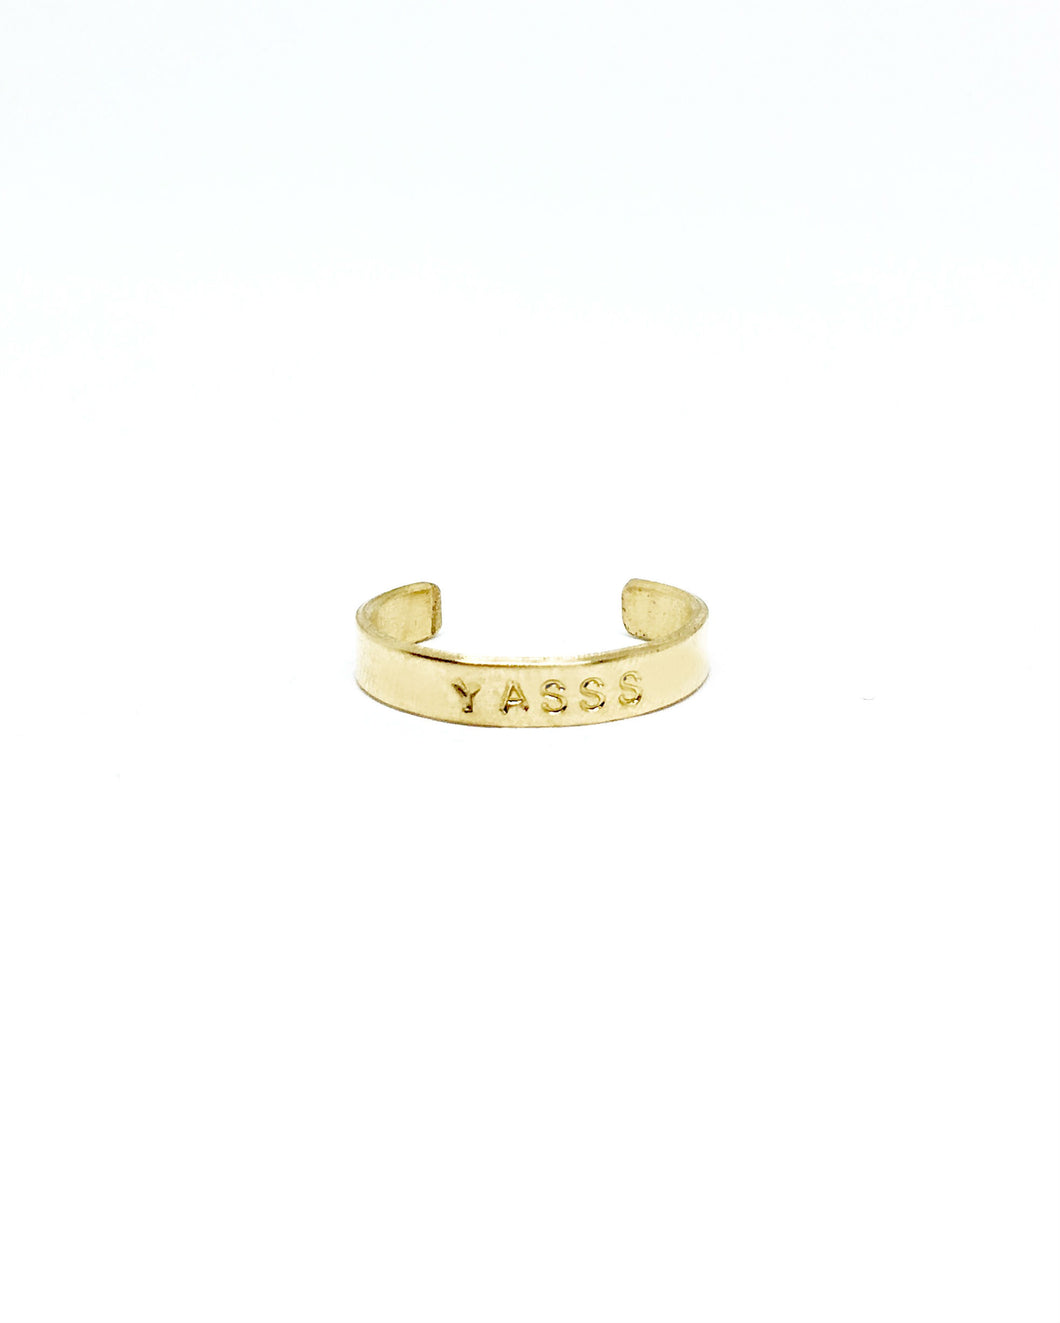 YASSS Handstamped Ring